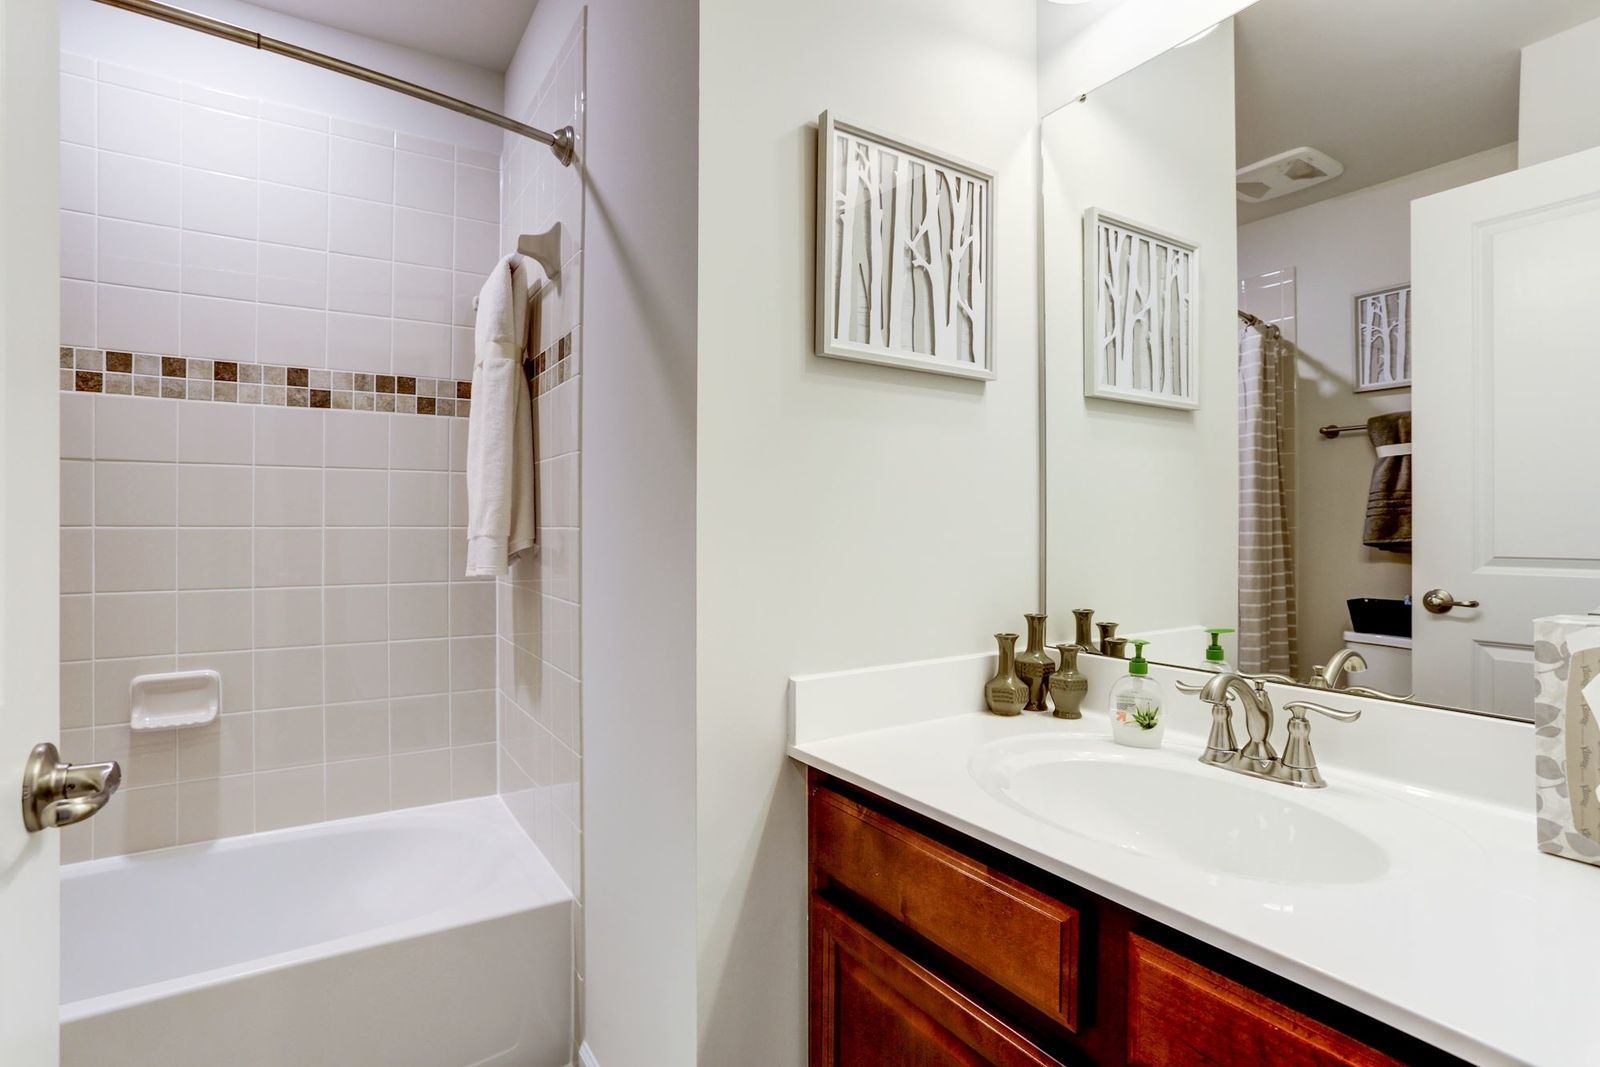 Bathroom featured in the Aviano By Ryan Homes in Sussex, DE